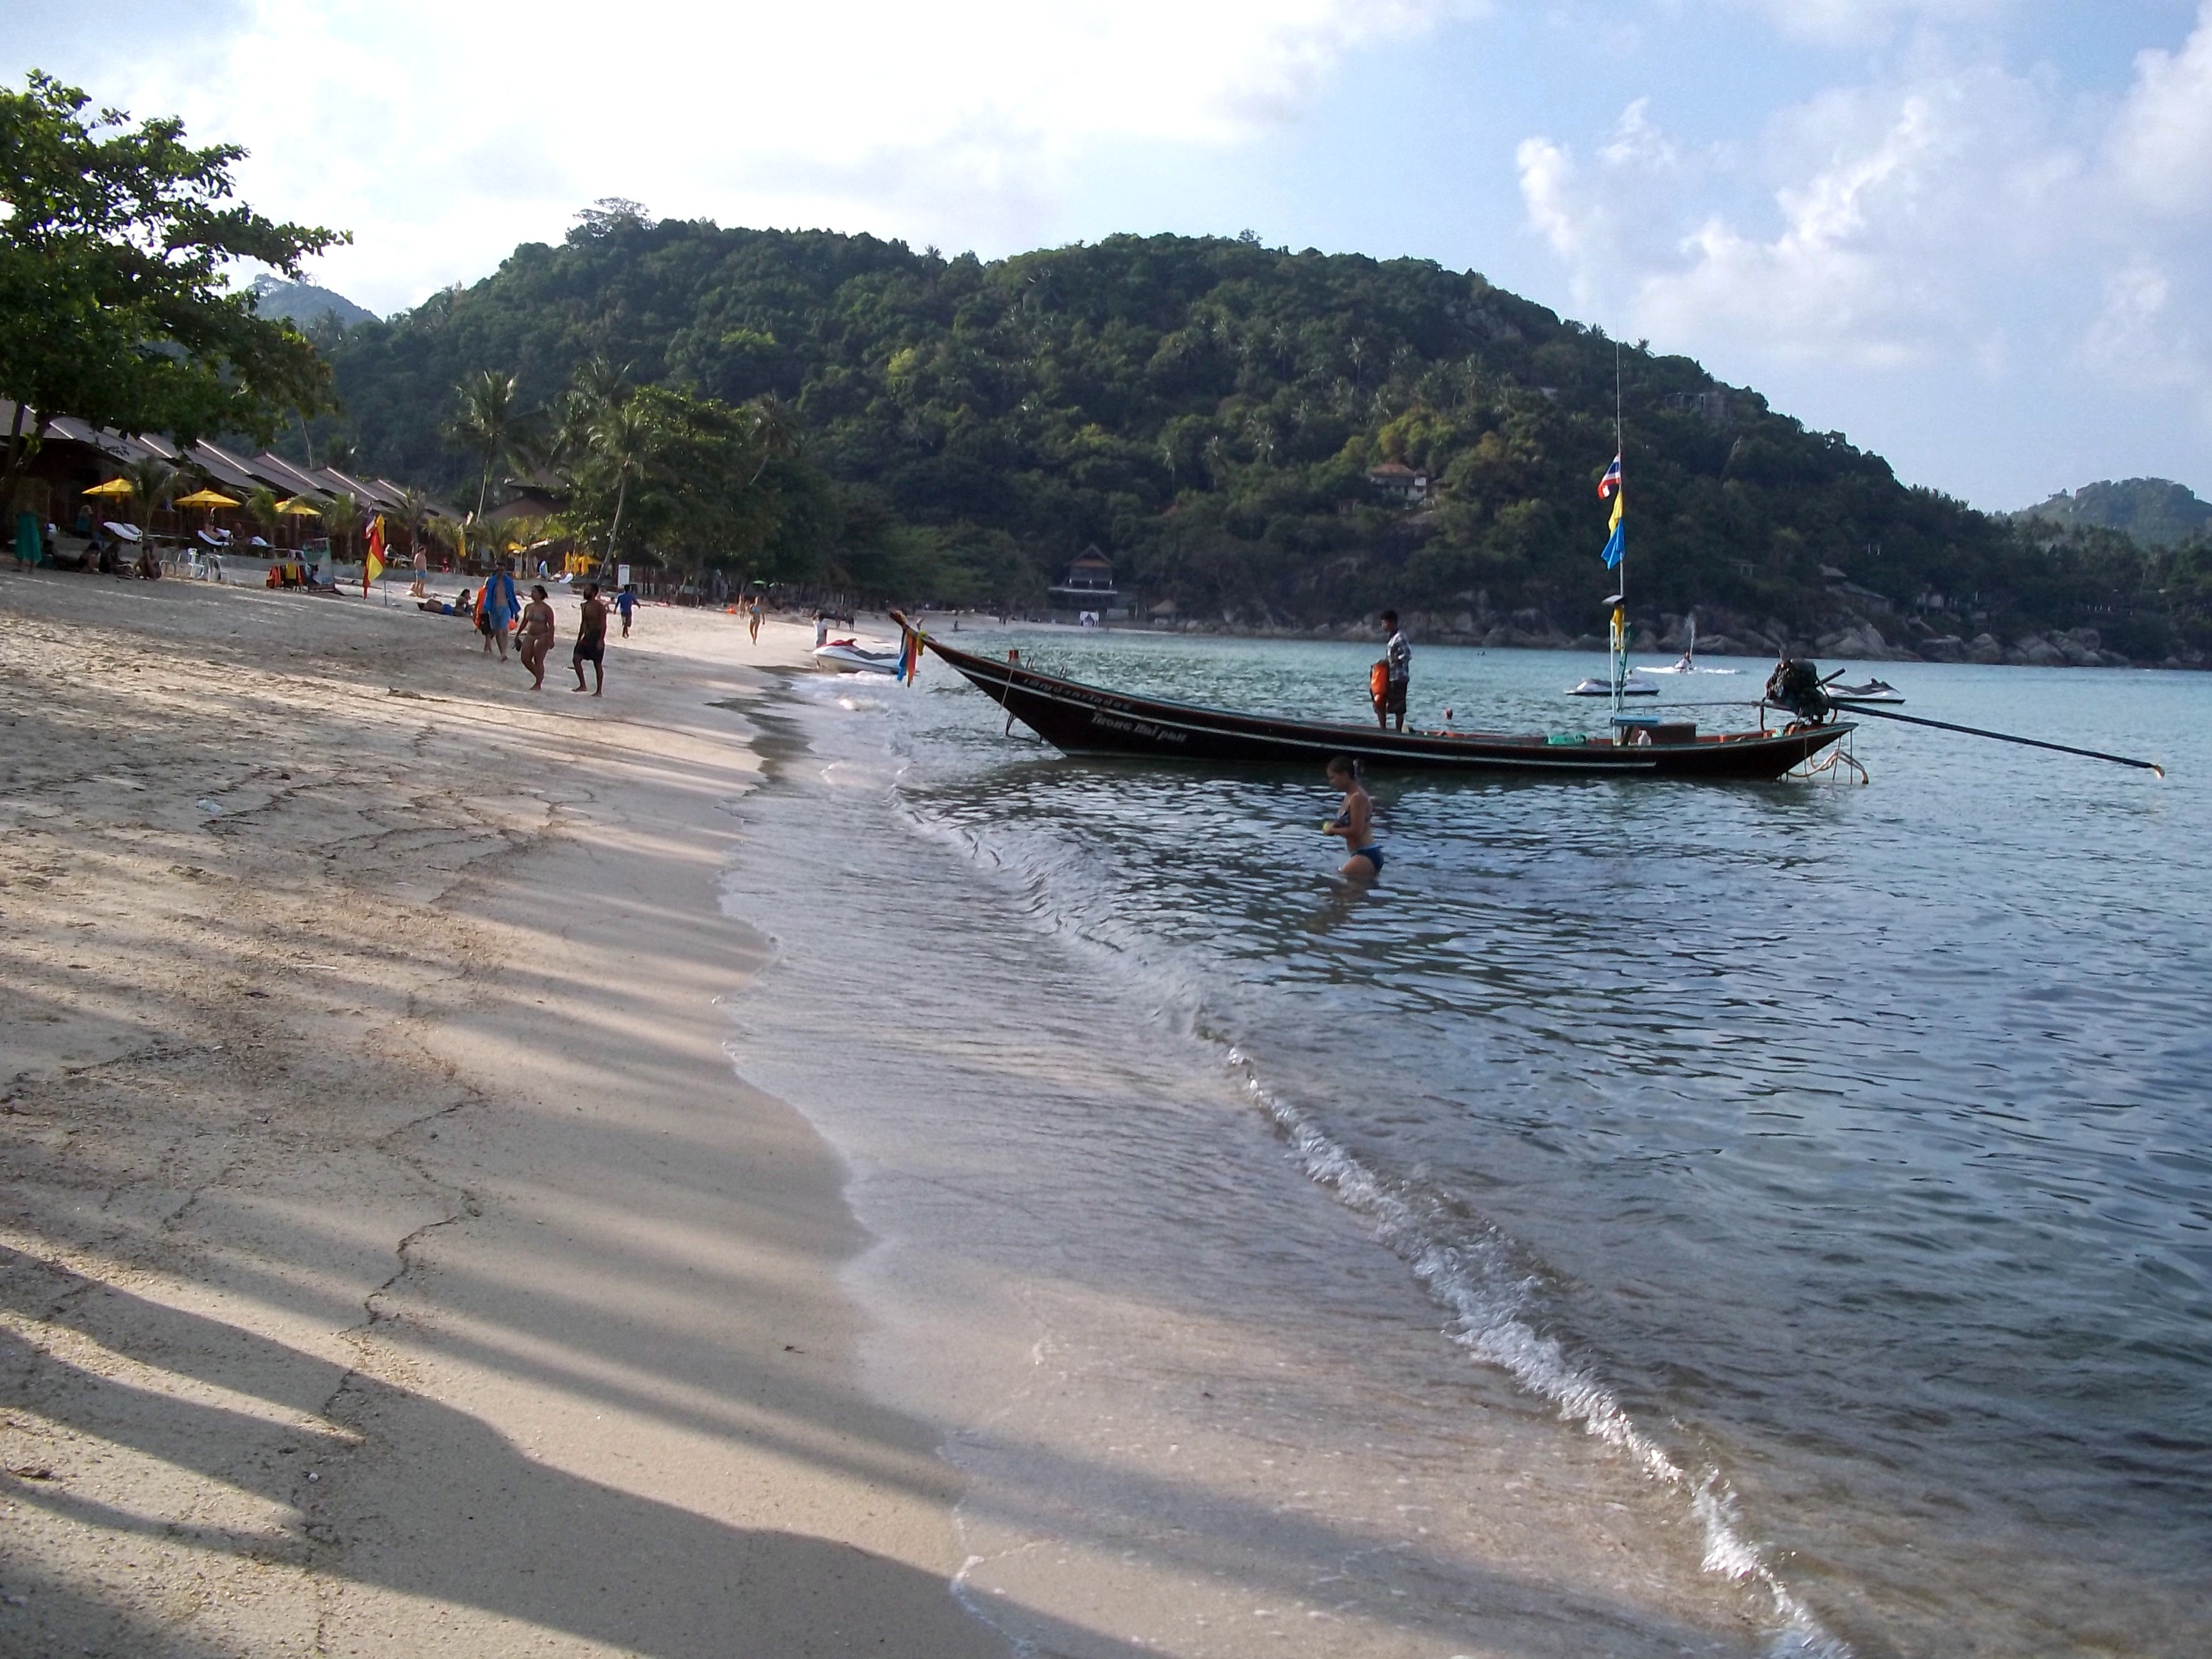 Surat Thani province is famous for its beaches